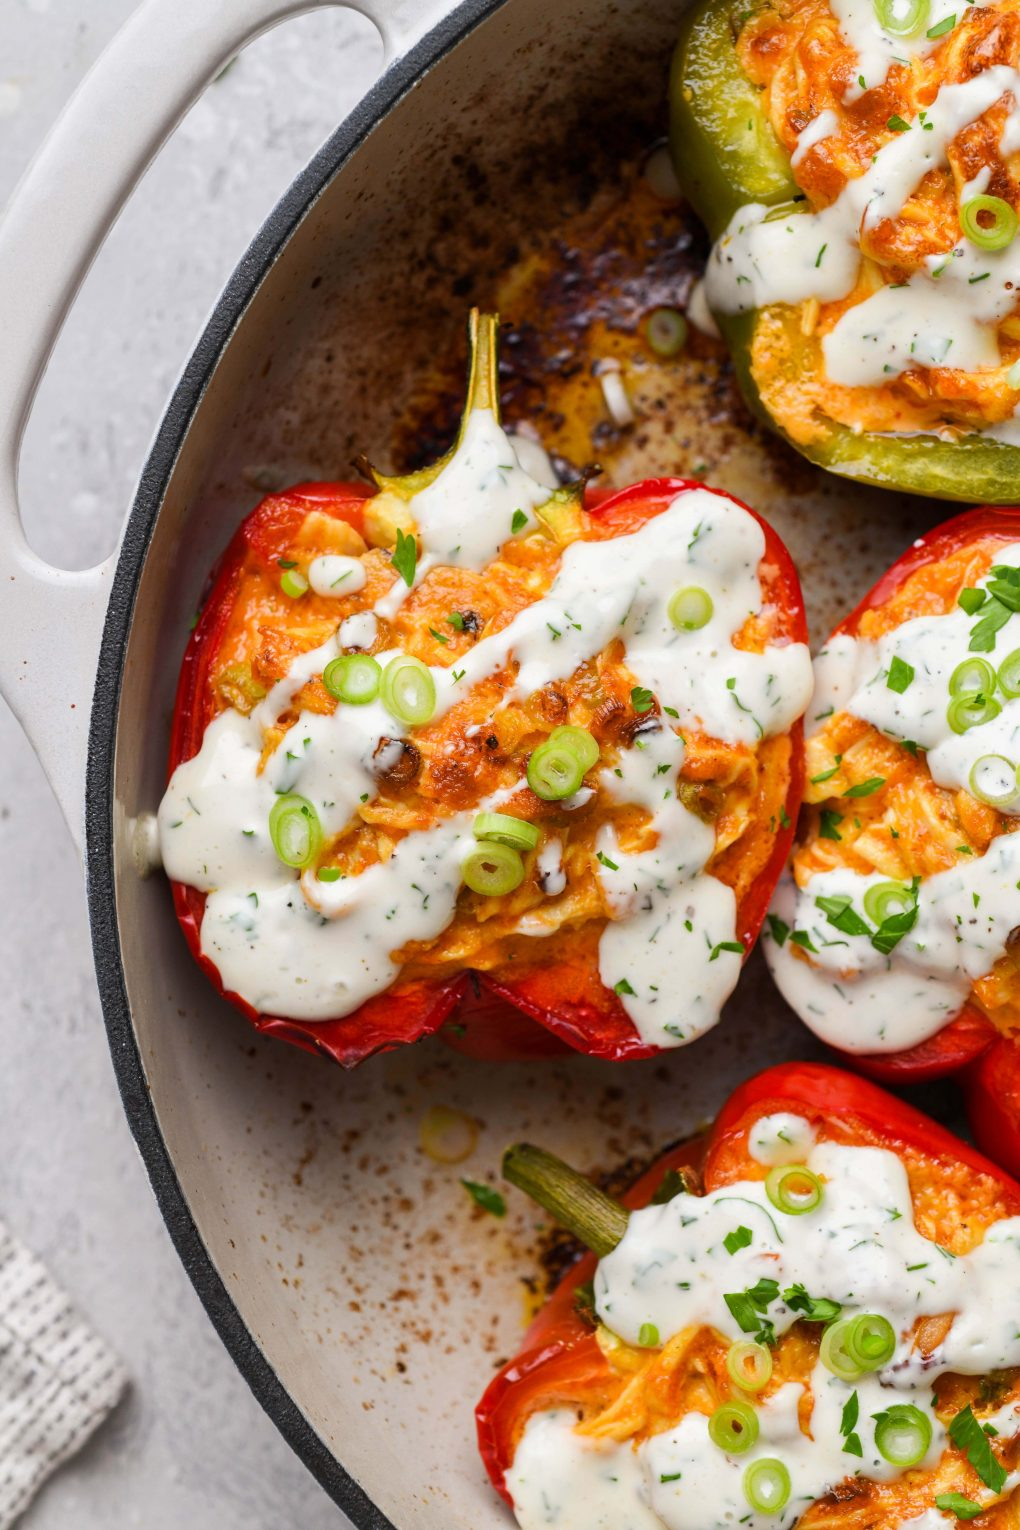 Overhead shot of colorful buffalo chicken stuffed bell peppers in an enameled cast iron skillet. Drizzled with dairy free ranch and topped with fresh herbs and thinly sliced green onion. On a light grey background next to a white and navy striped linen.